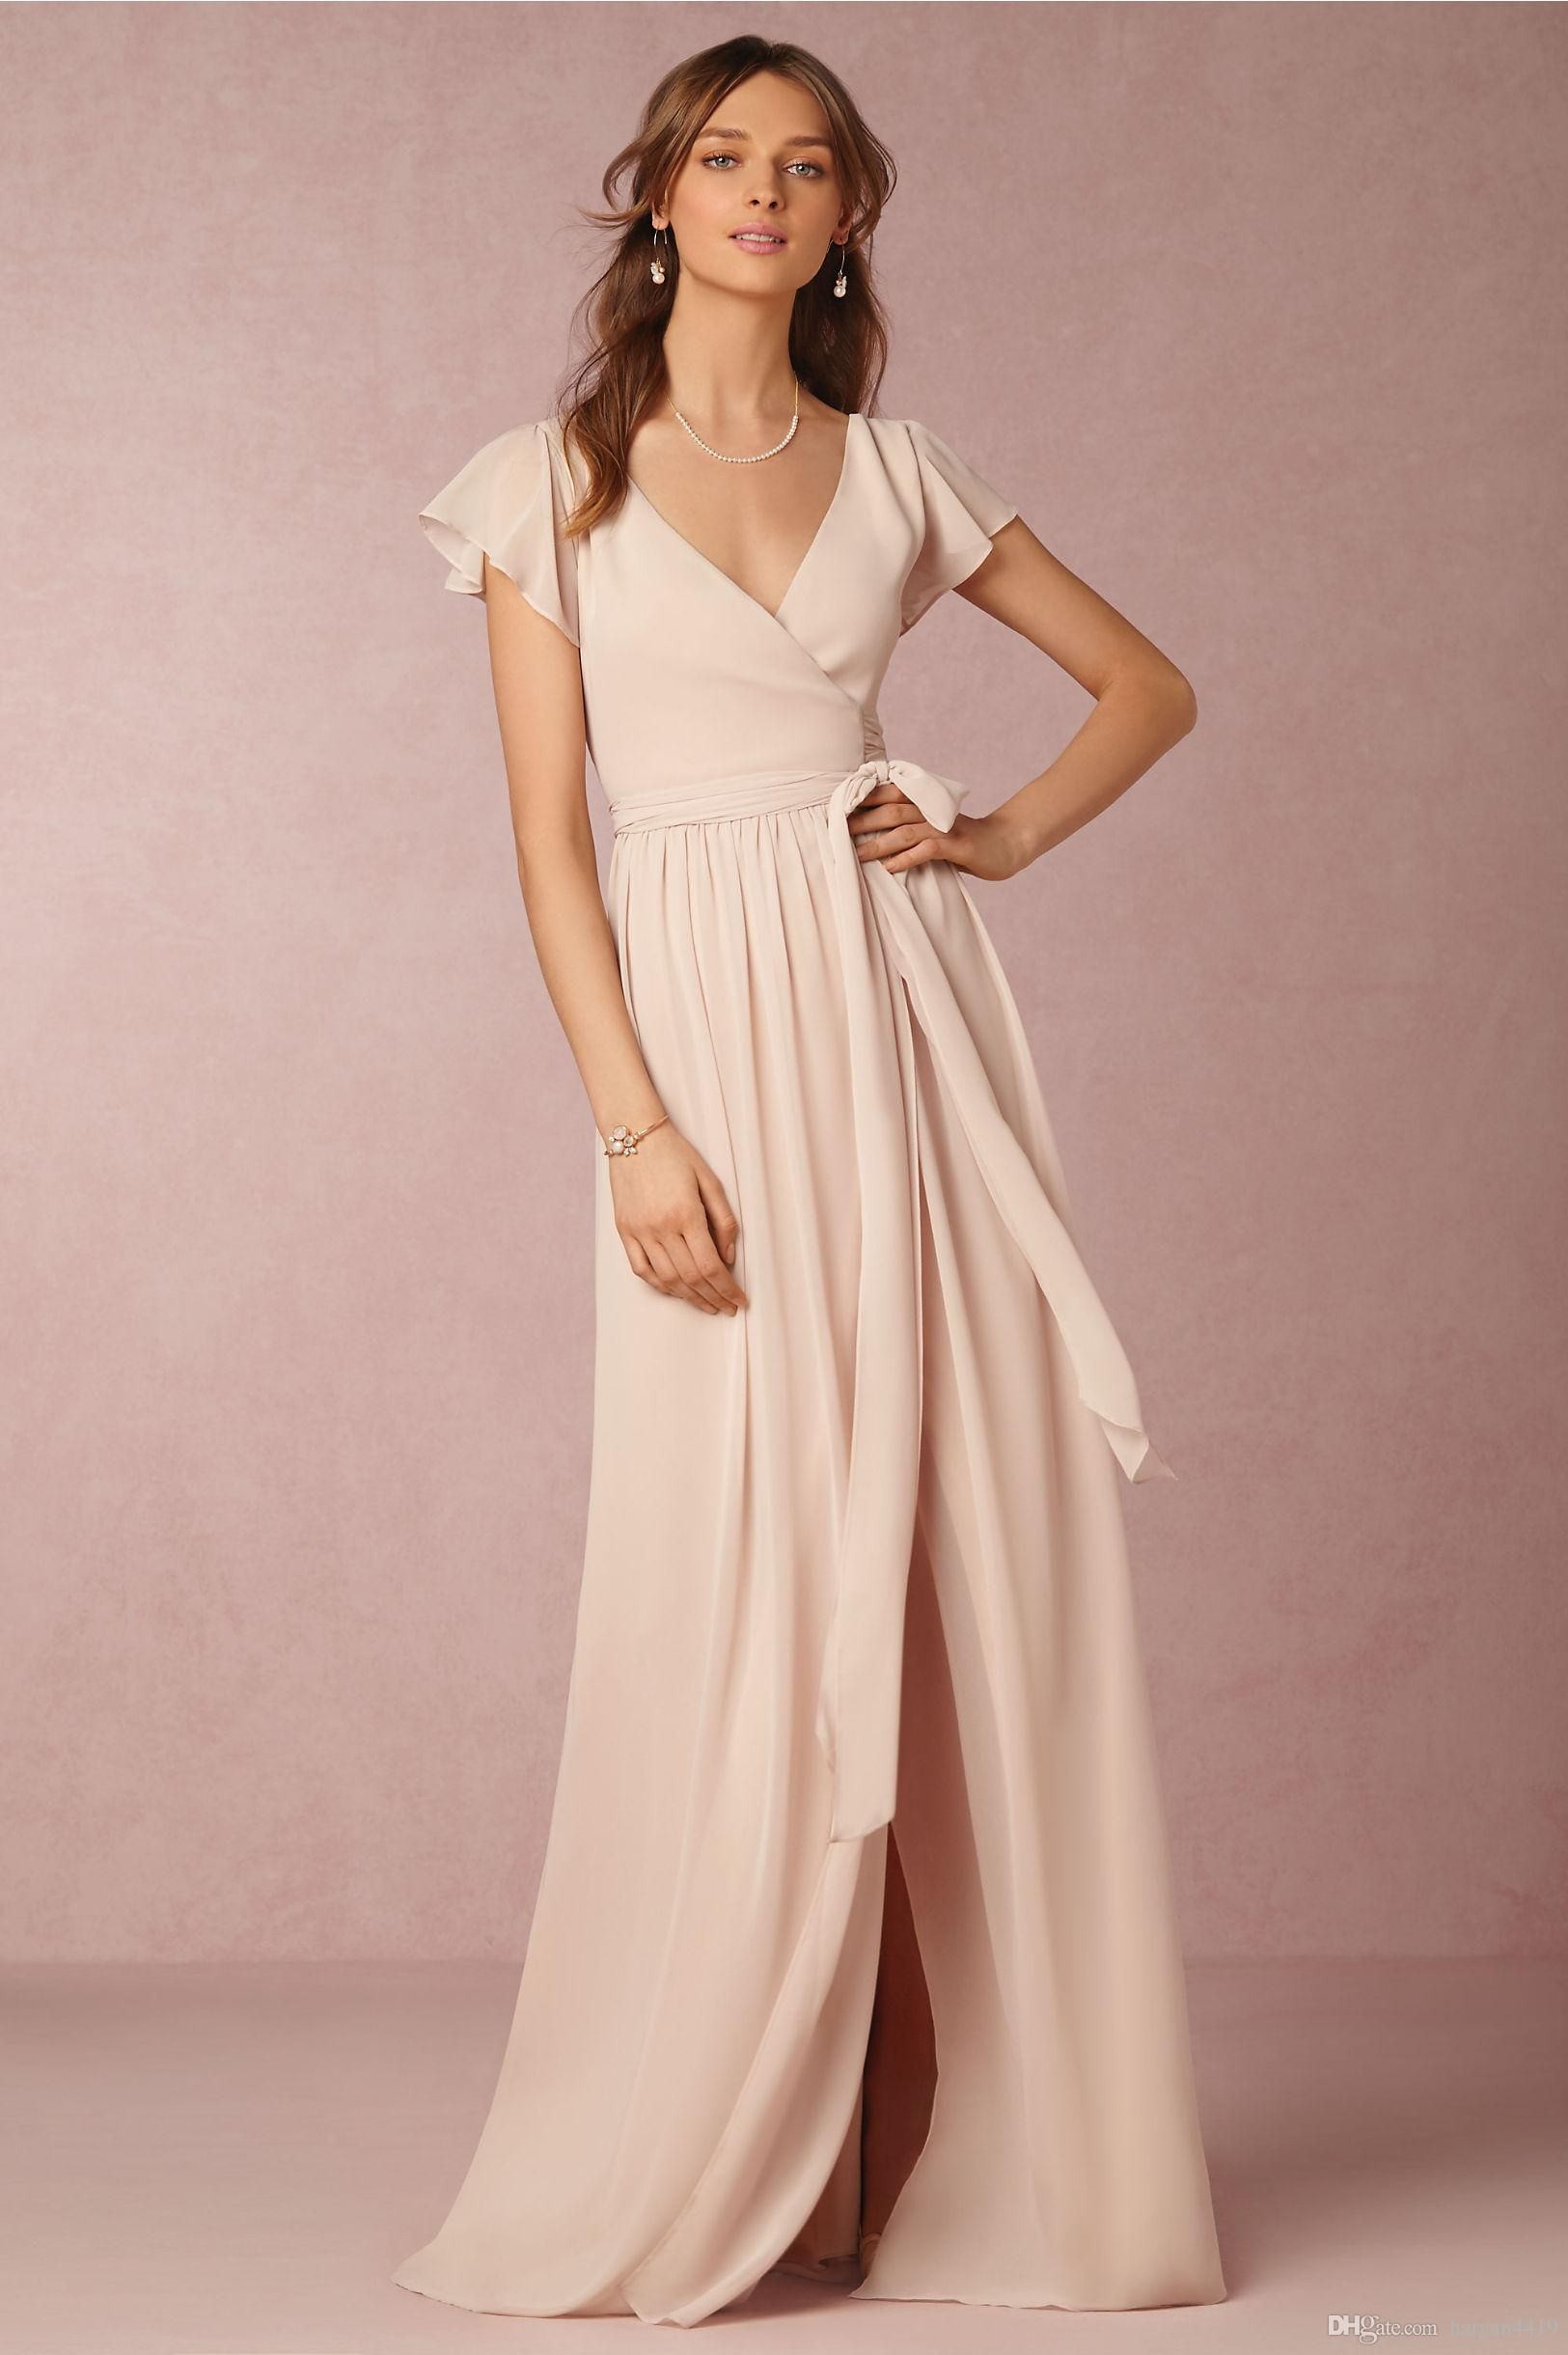 Short sleeve dresses for wedding guests   Cheap Bridesmaid Dresses V Neck Wedding Guest Wear Nude Chiffon